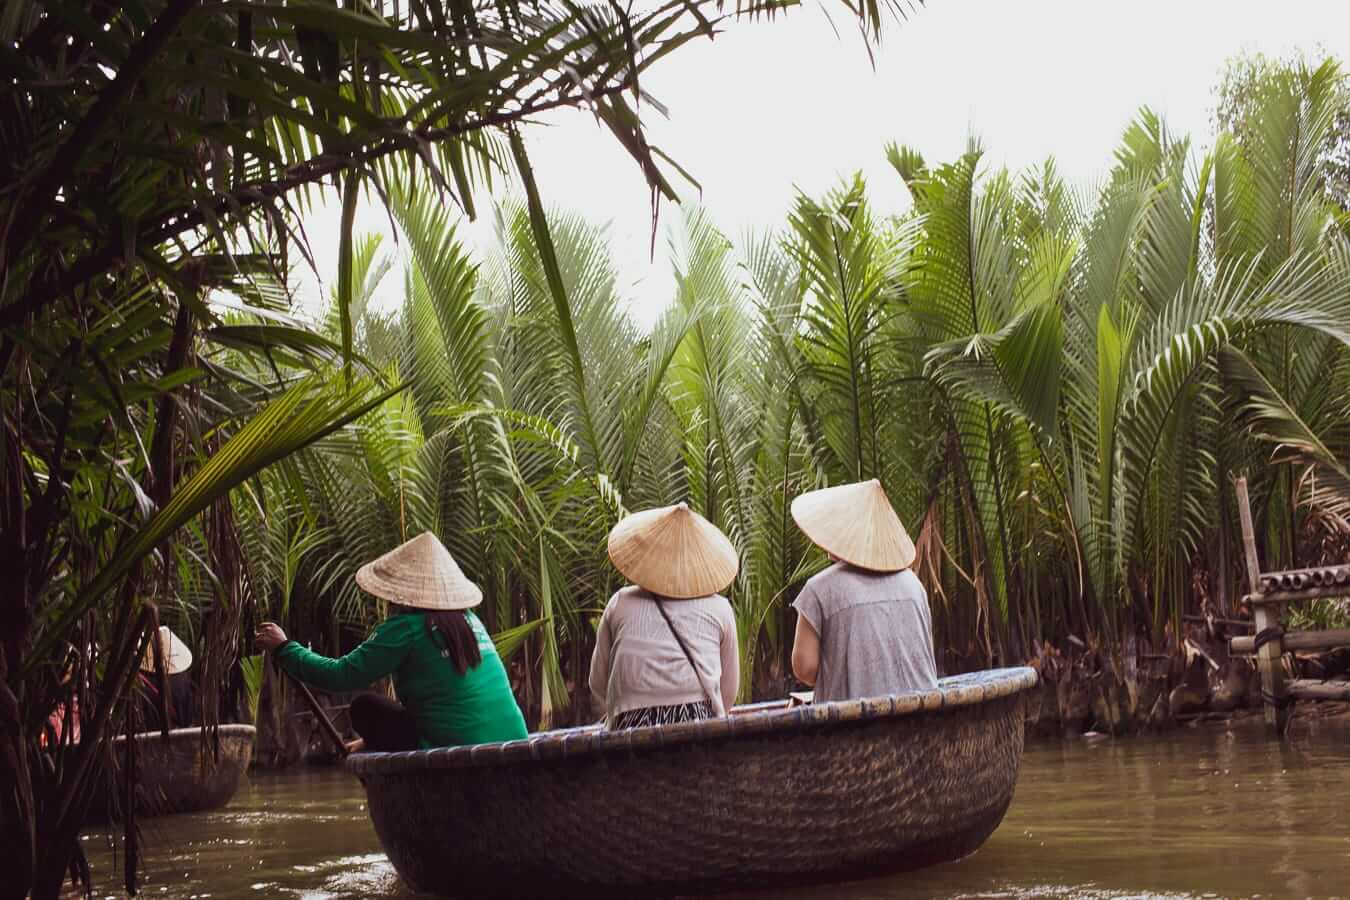 Water Coconut Palm Basket Boats: Activities and Tours In Hoi An